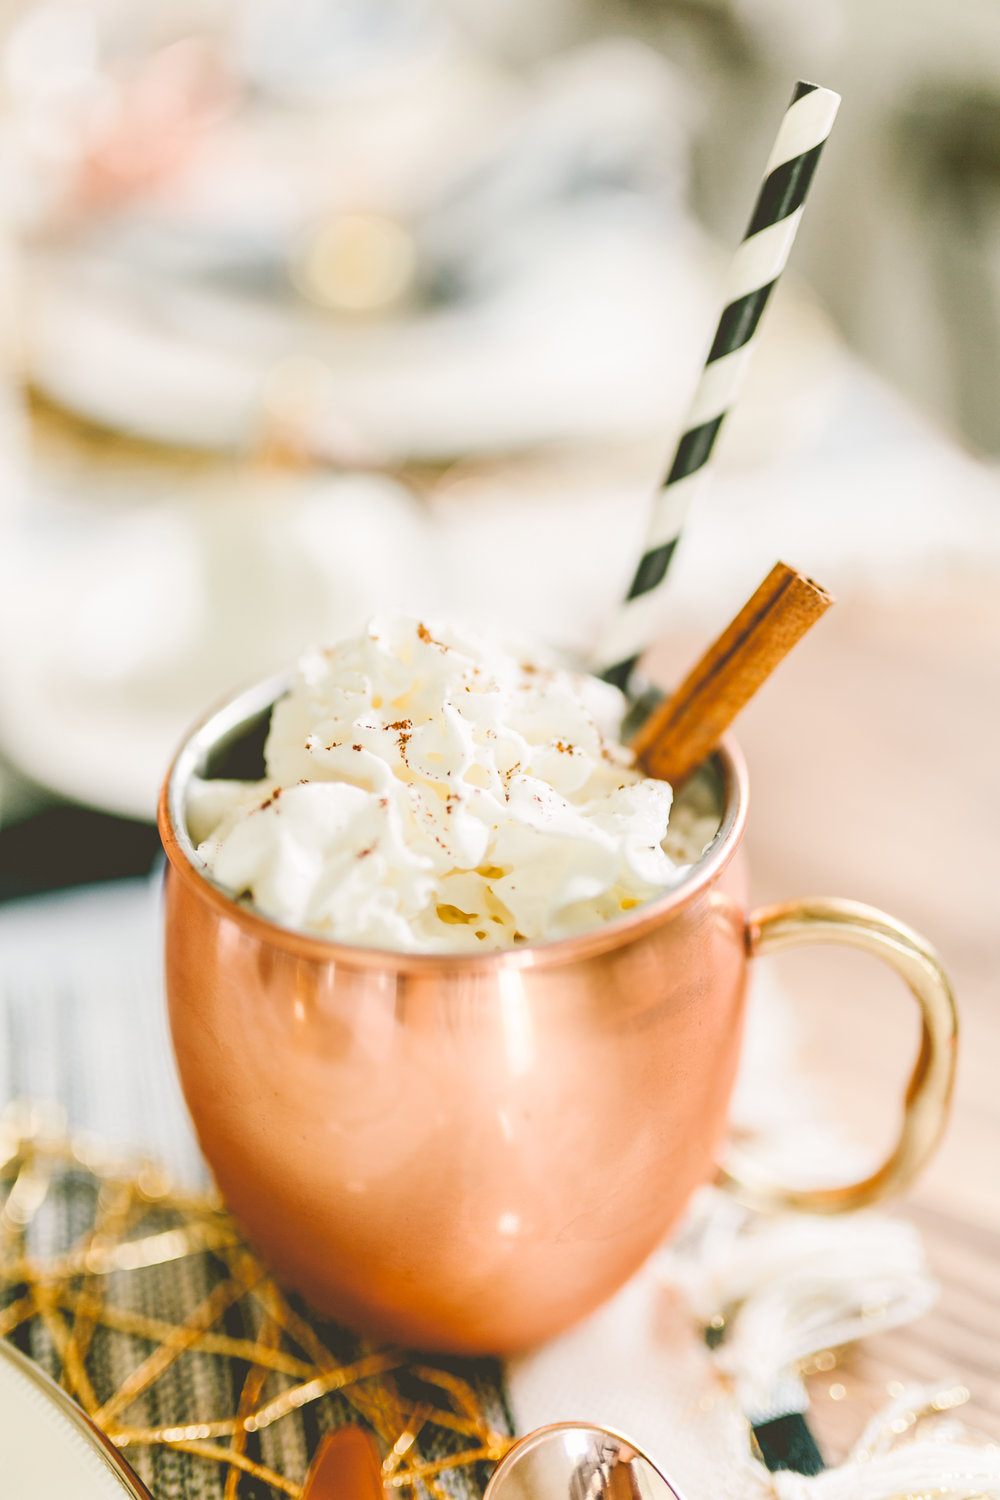 This delicious, creamy crockpot apple cider recipe from Claire Falco Creative is perfect for the holidays! Check out the video!